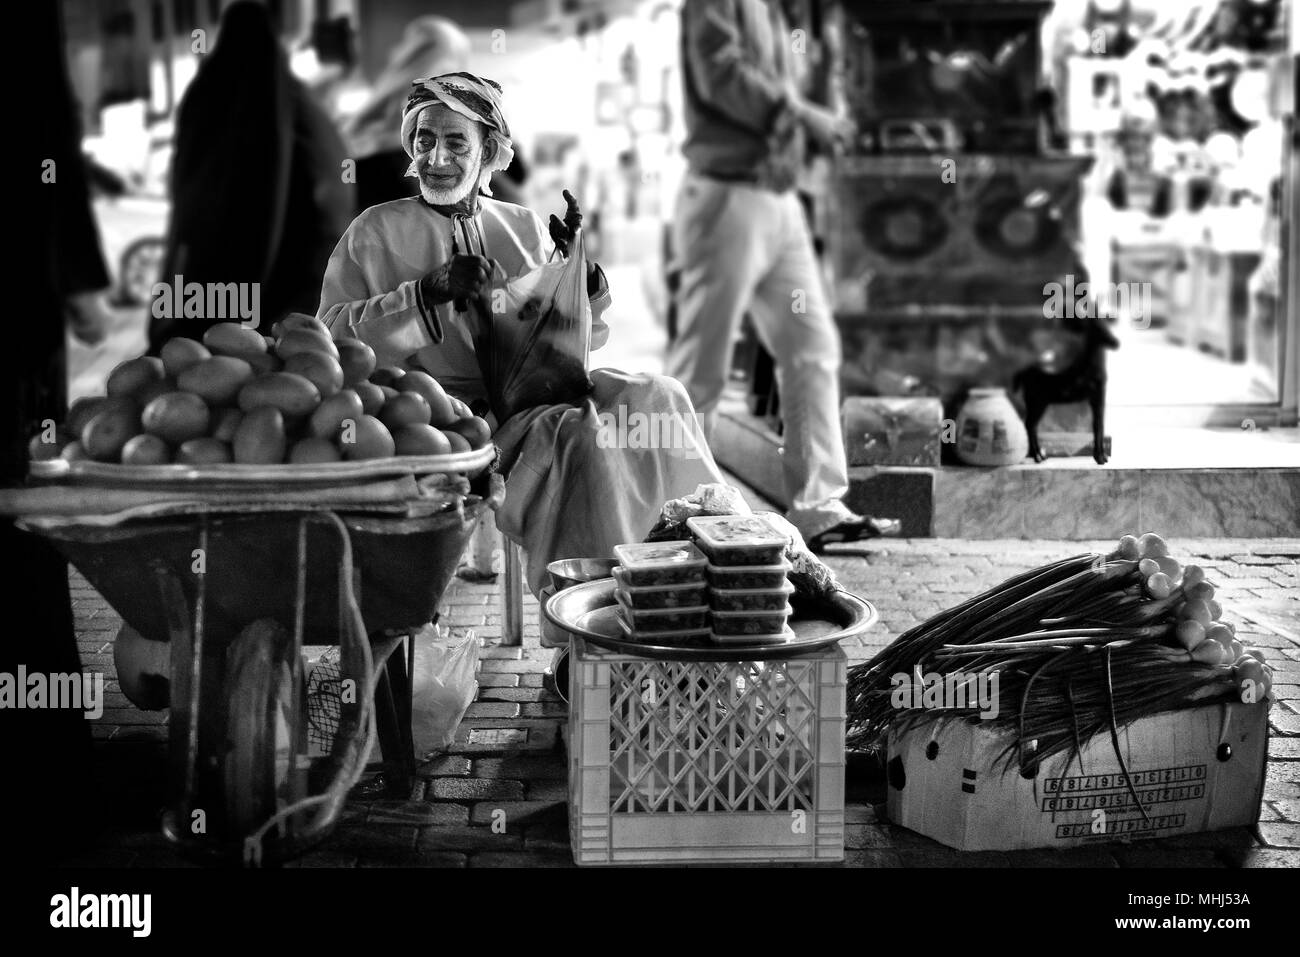 street shop-kipper - Stock Image